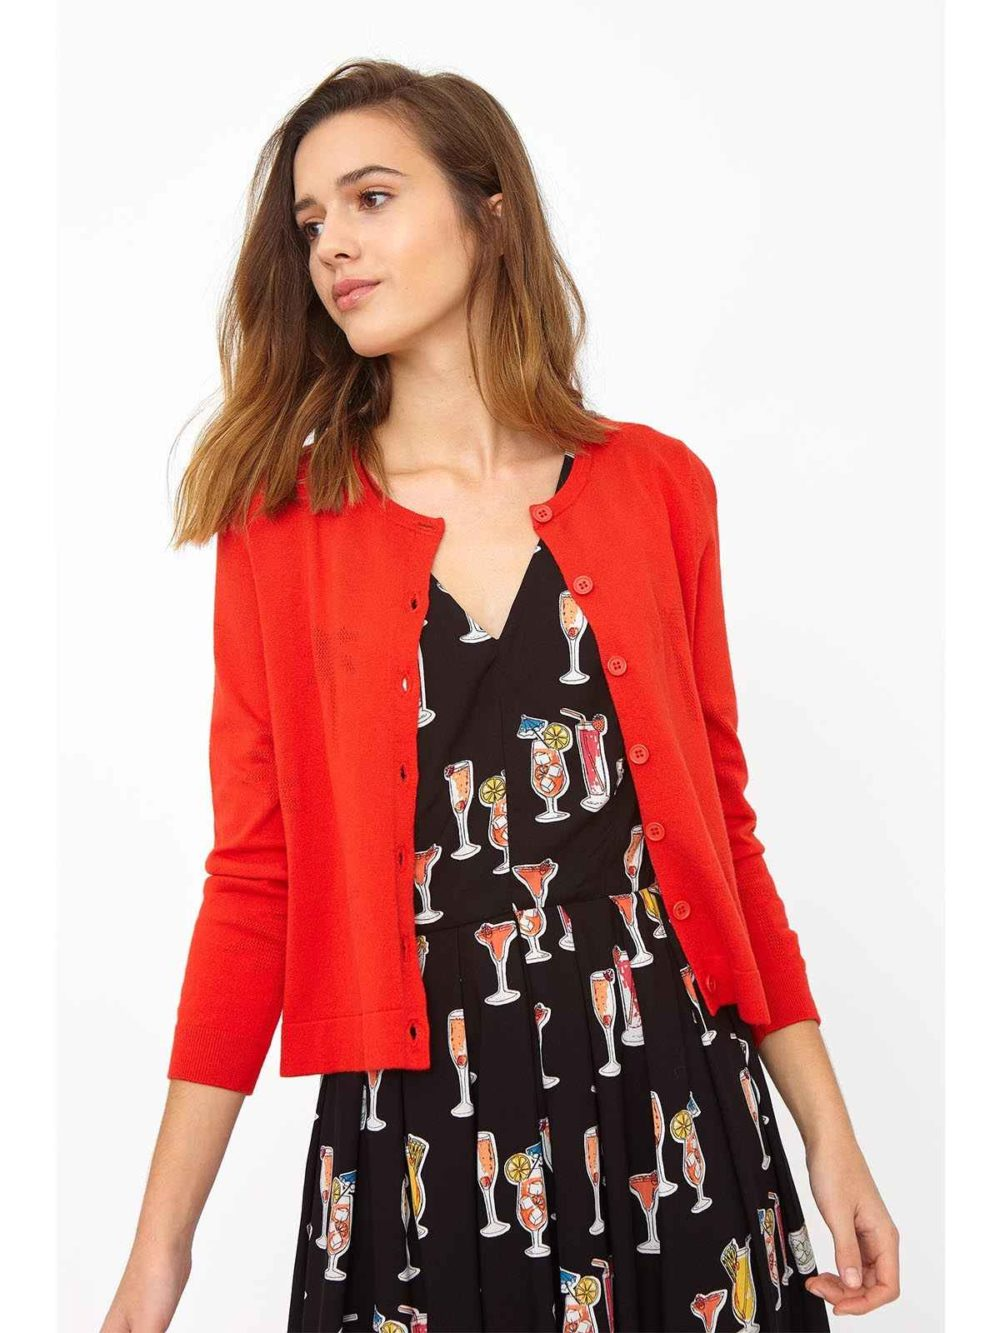 Lily Palm Tree Pointelle Cardi Emily and Fin Katie Kerr Women's Clothing